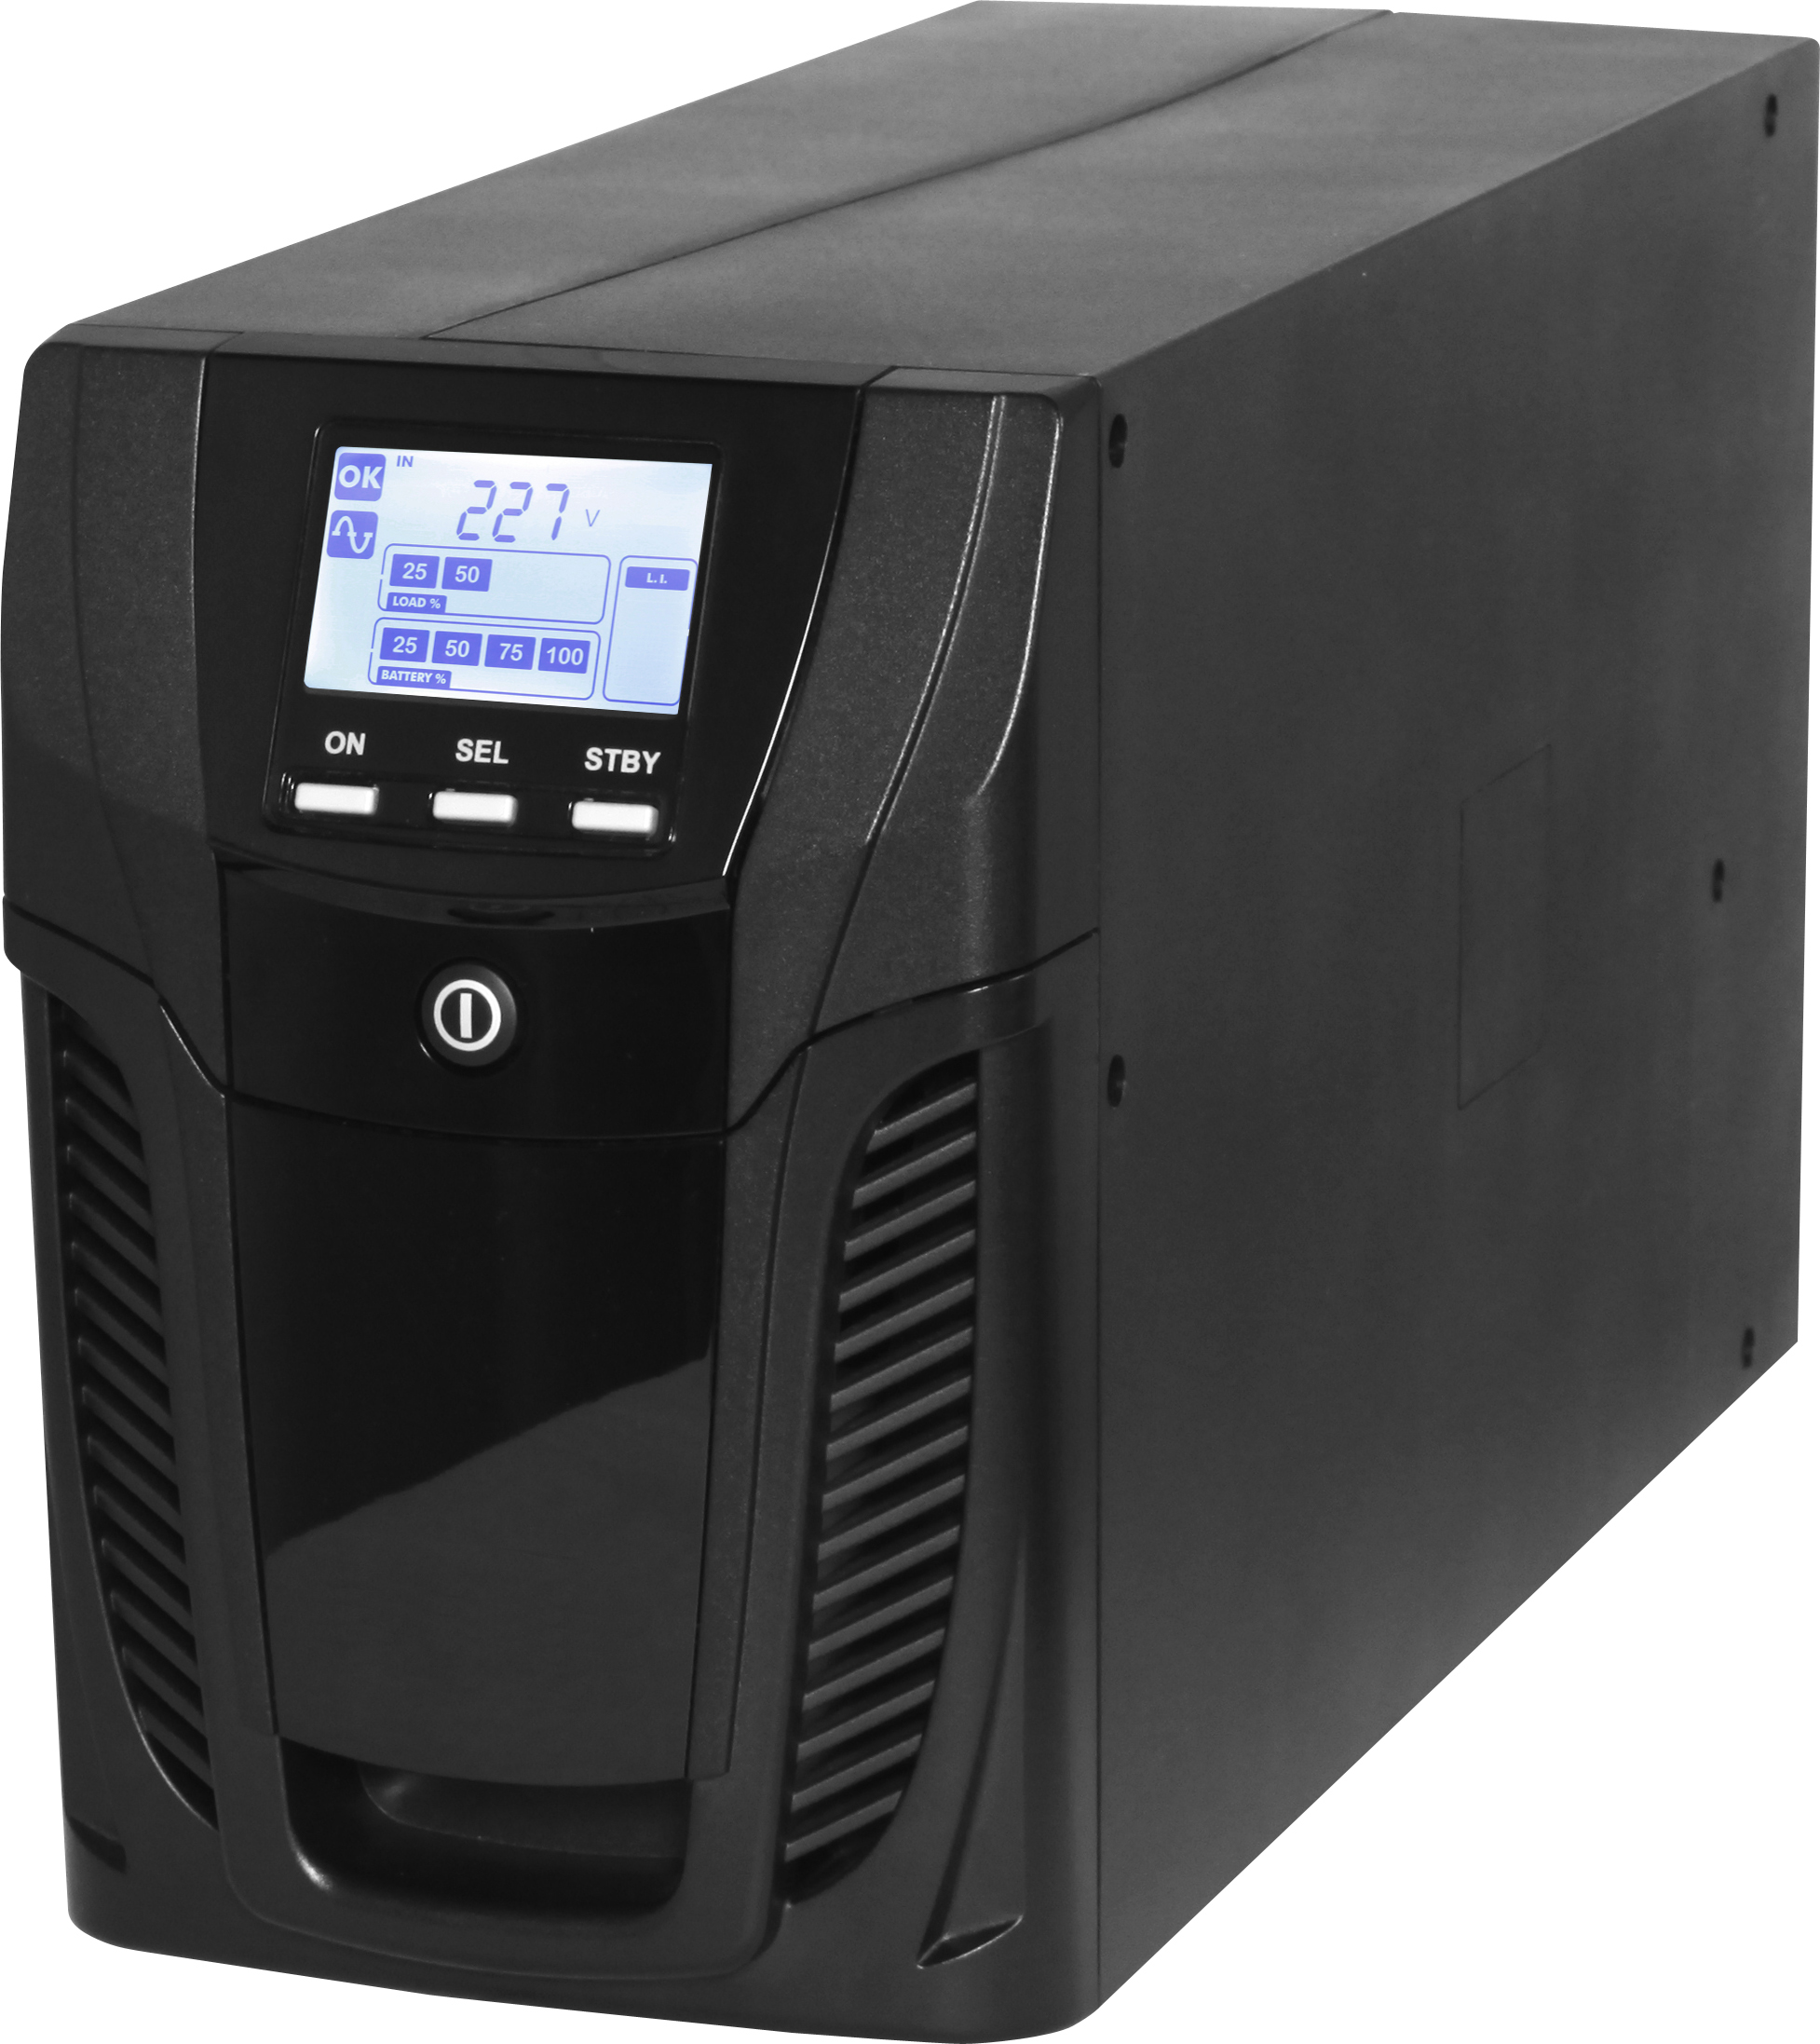 1 Stk USV GENIO Flex Plus Tower 1500VA 1200W 5 Min 1/1ph/Line-Int. USDVT150A-